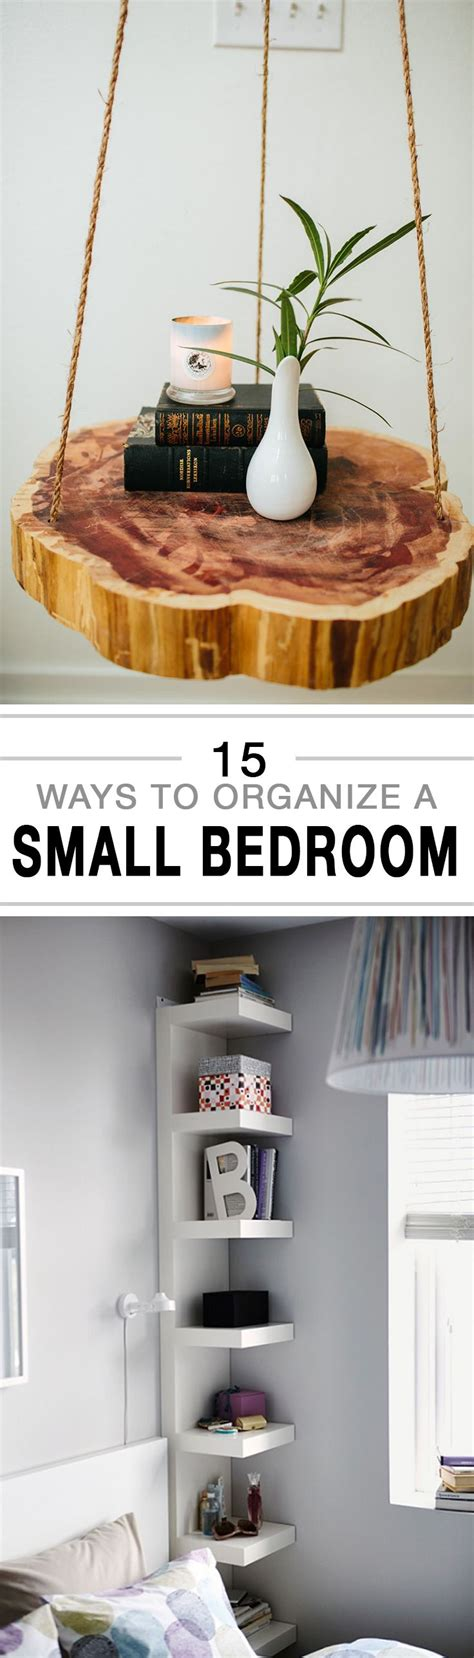 17 Best Ideas About Small Bedroom Storage On Pinterest